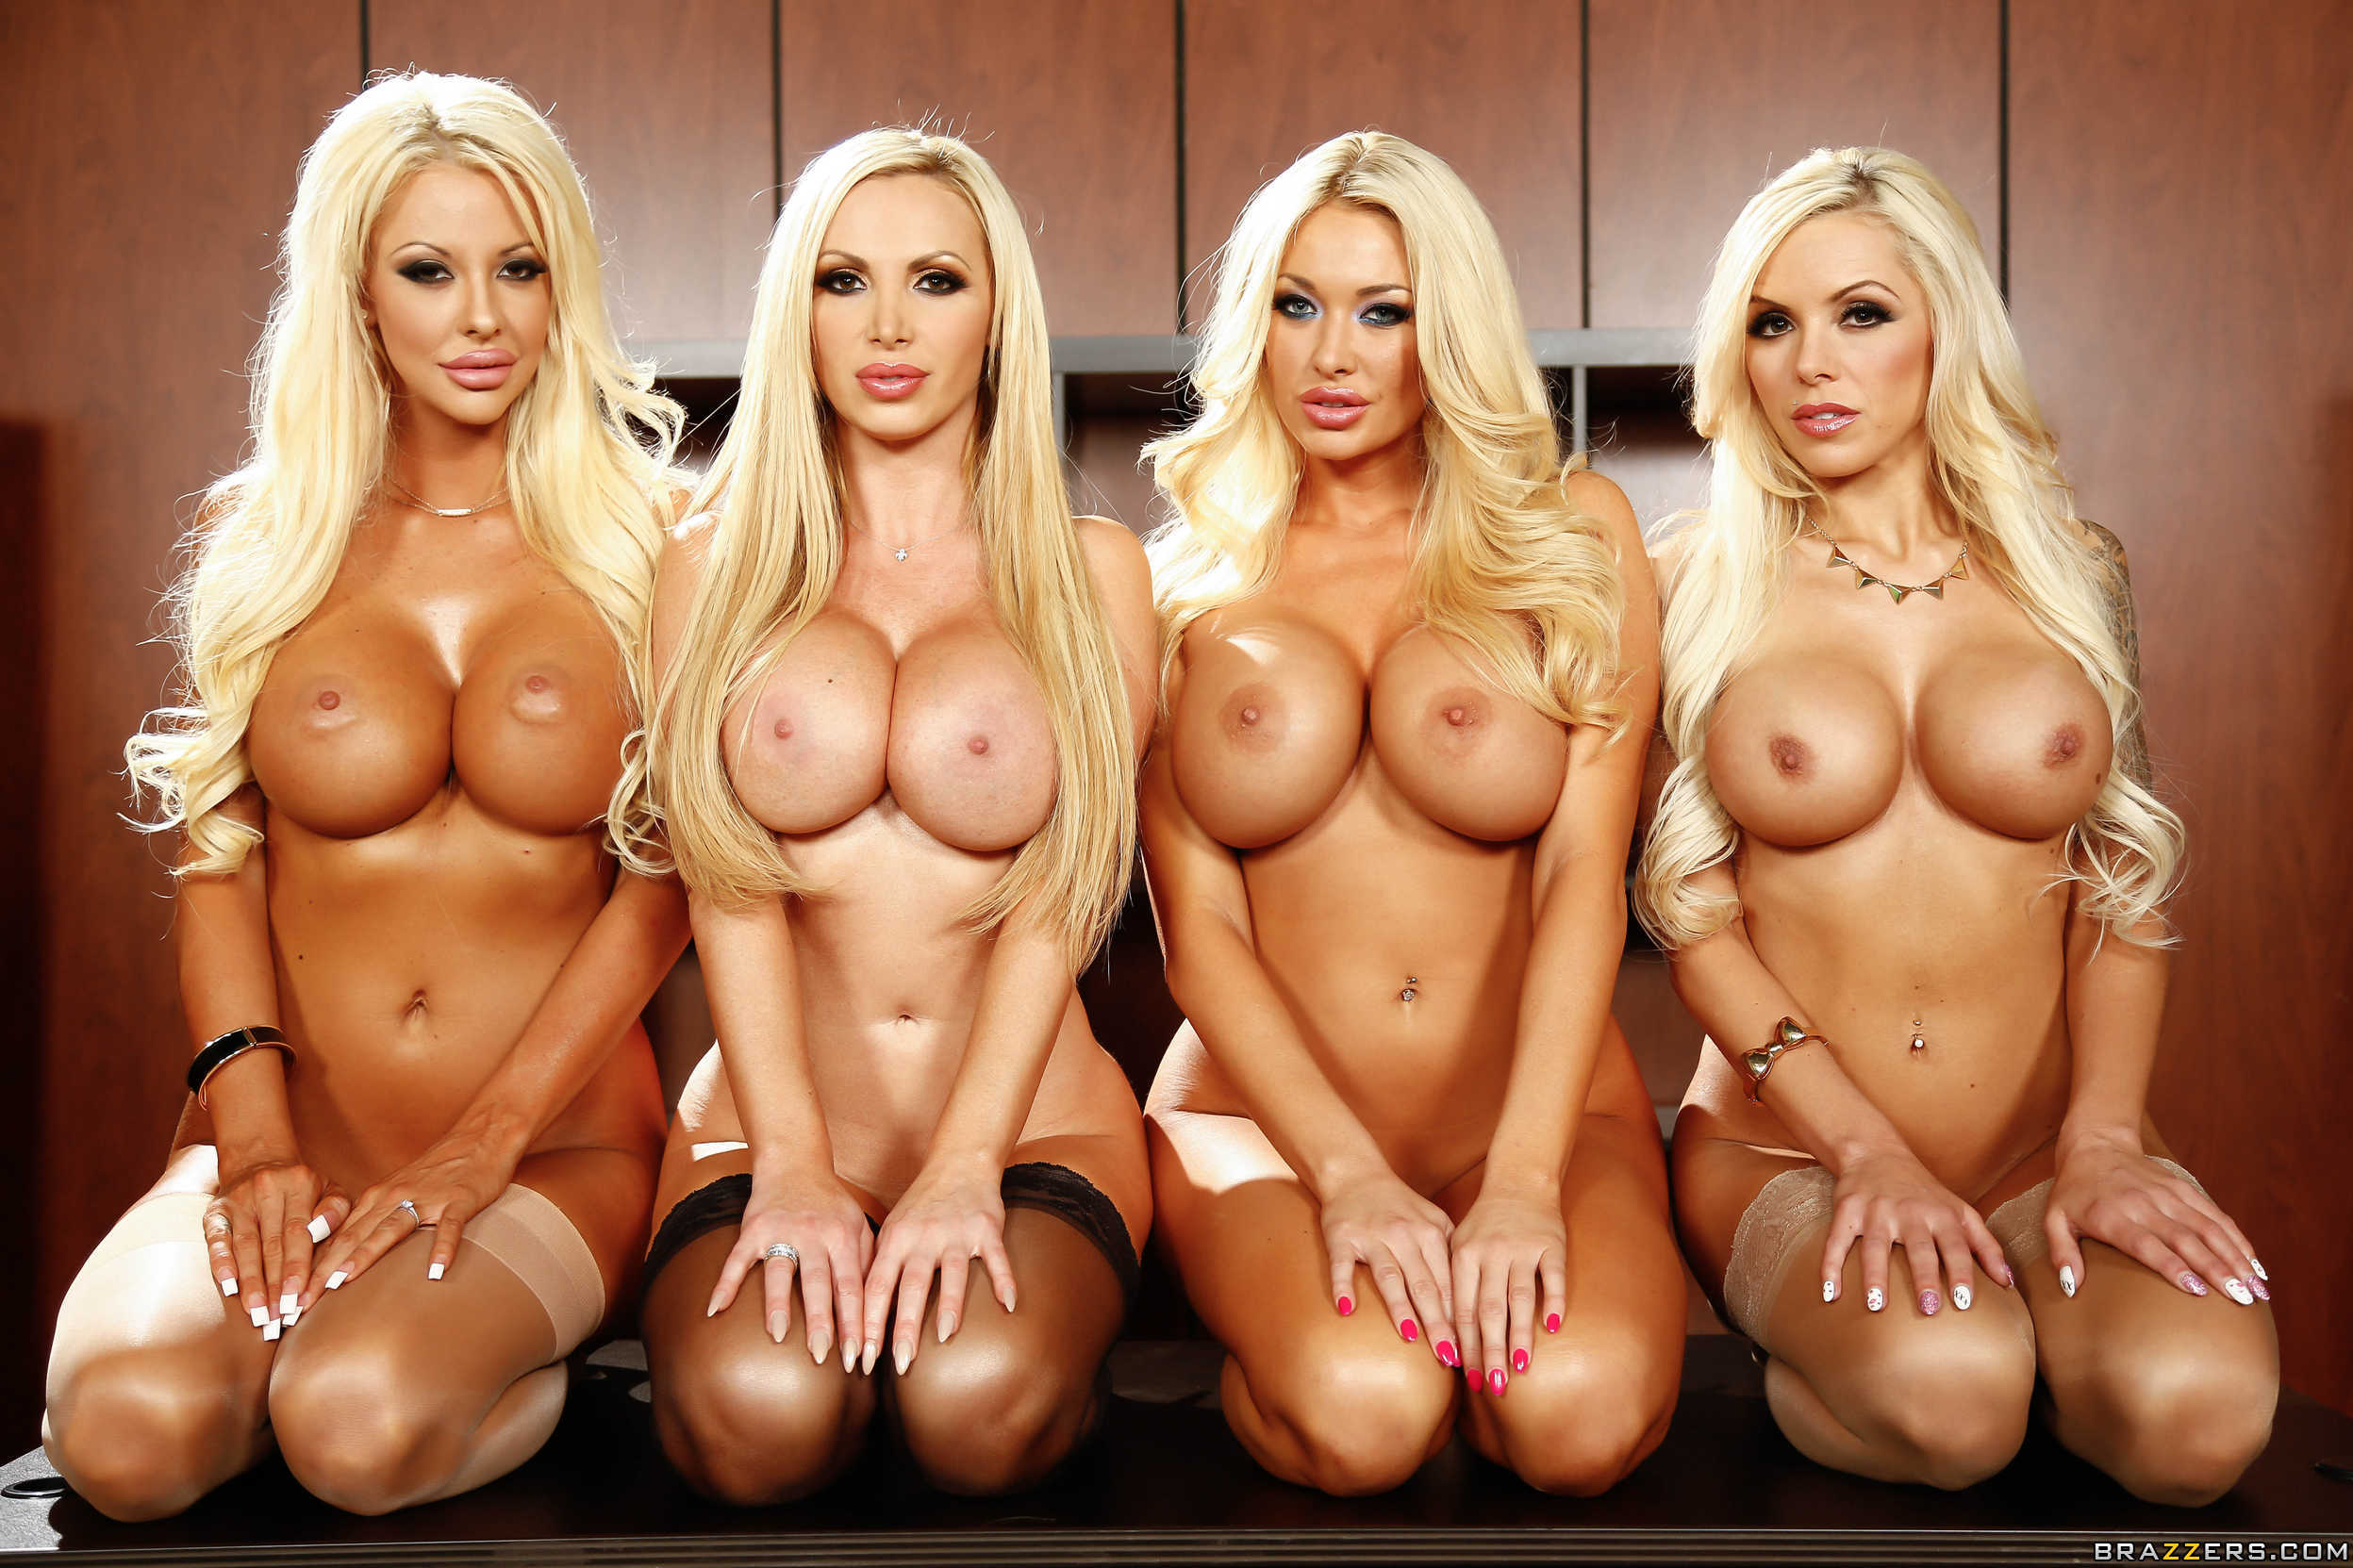 Courtney Taylor, Nikki Benz, Nina Elle, Summer Brielle office 4 blondes orgy 04